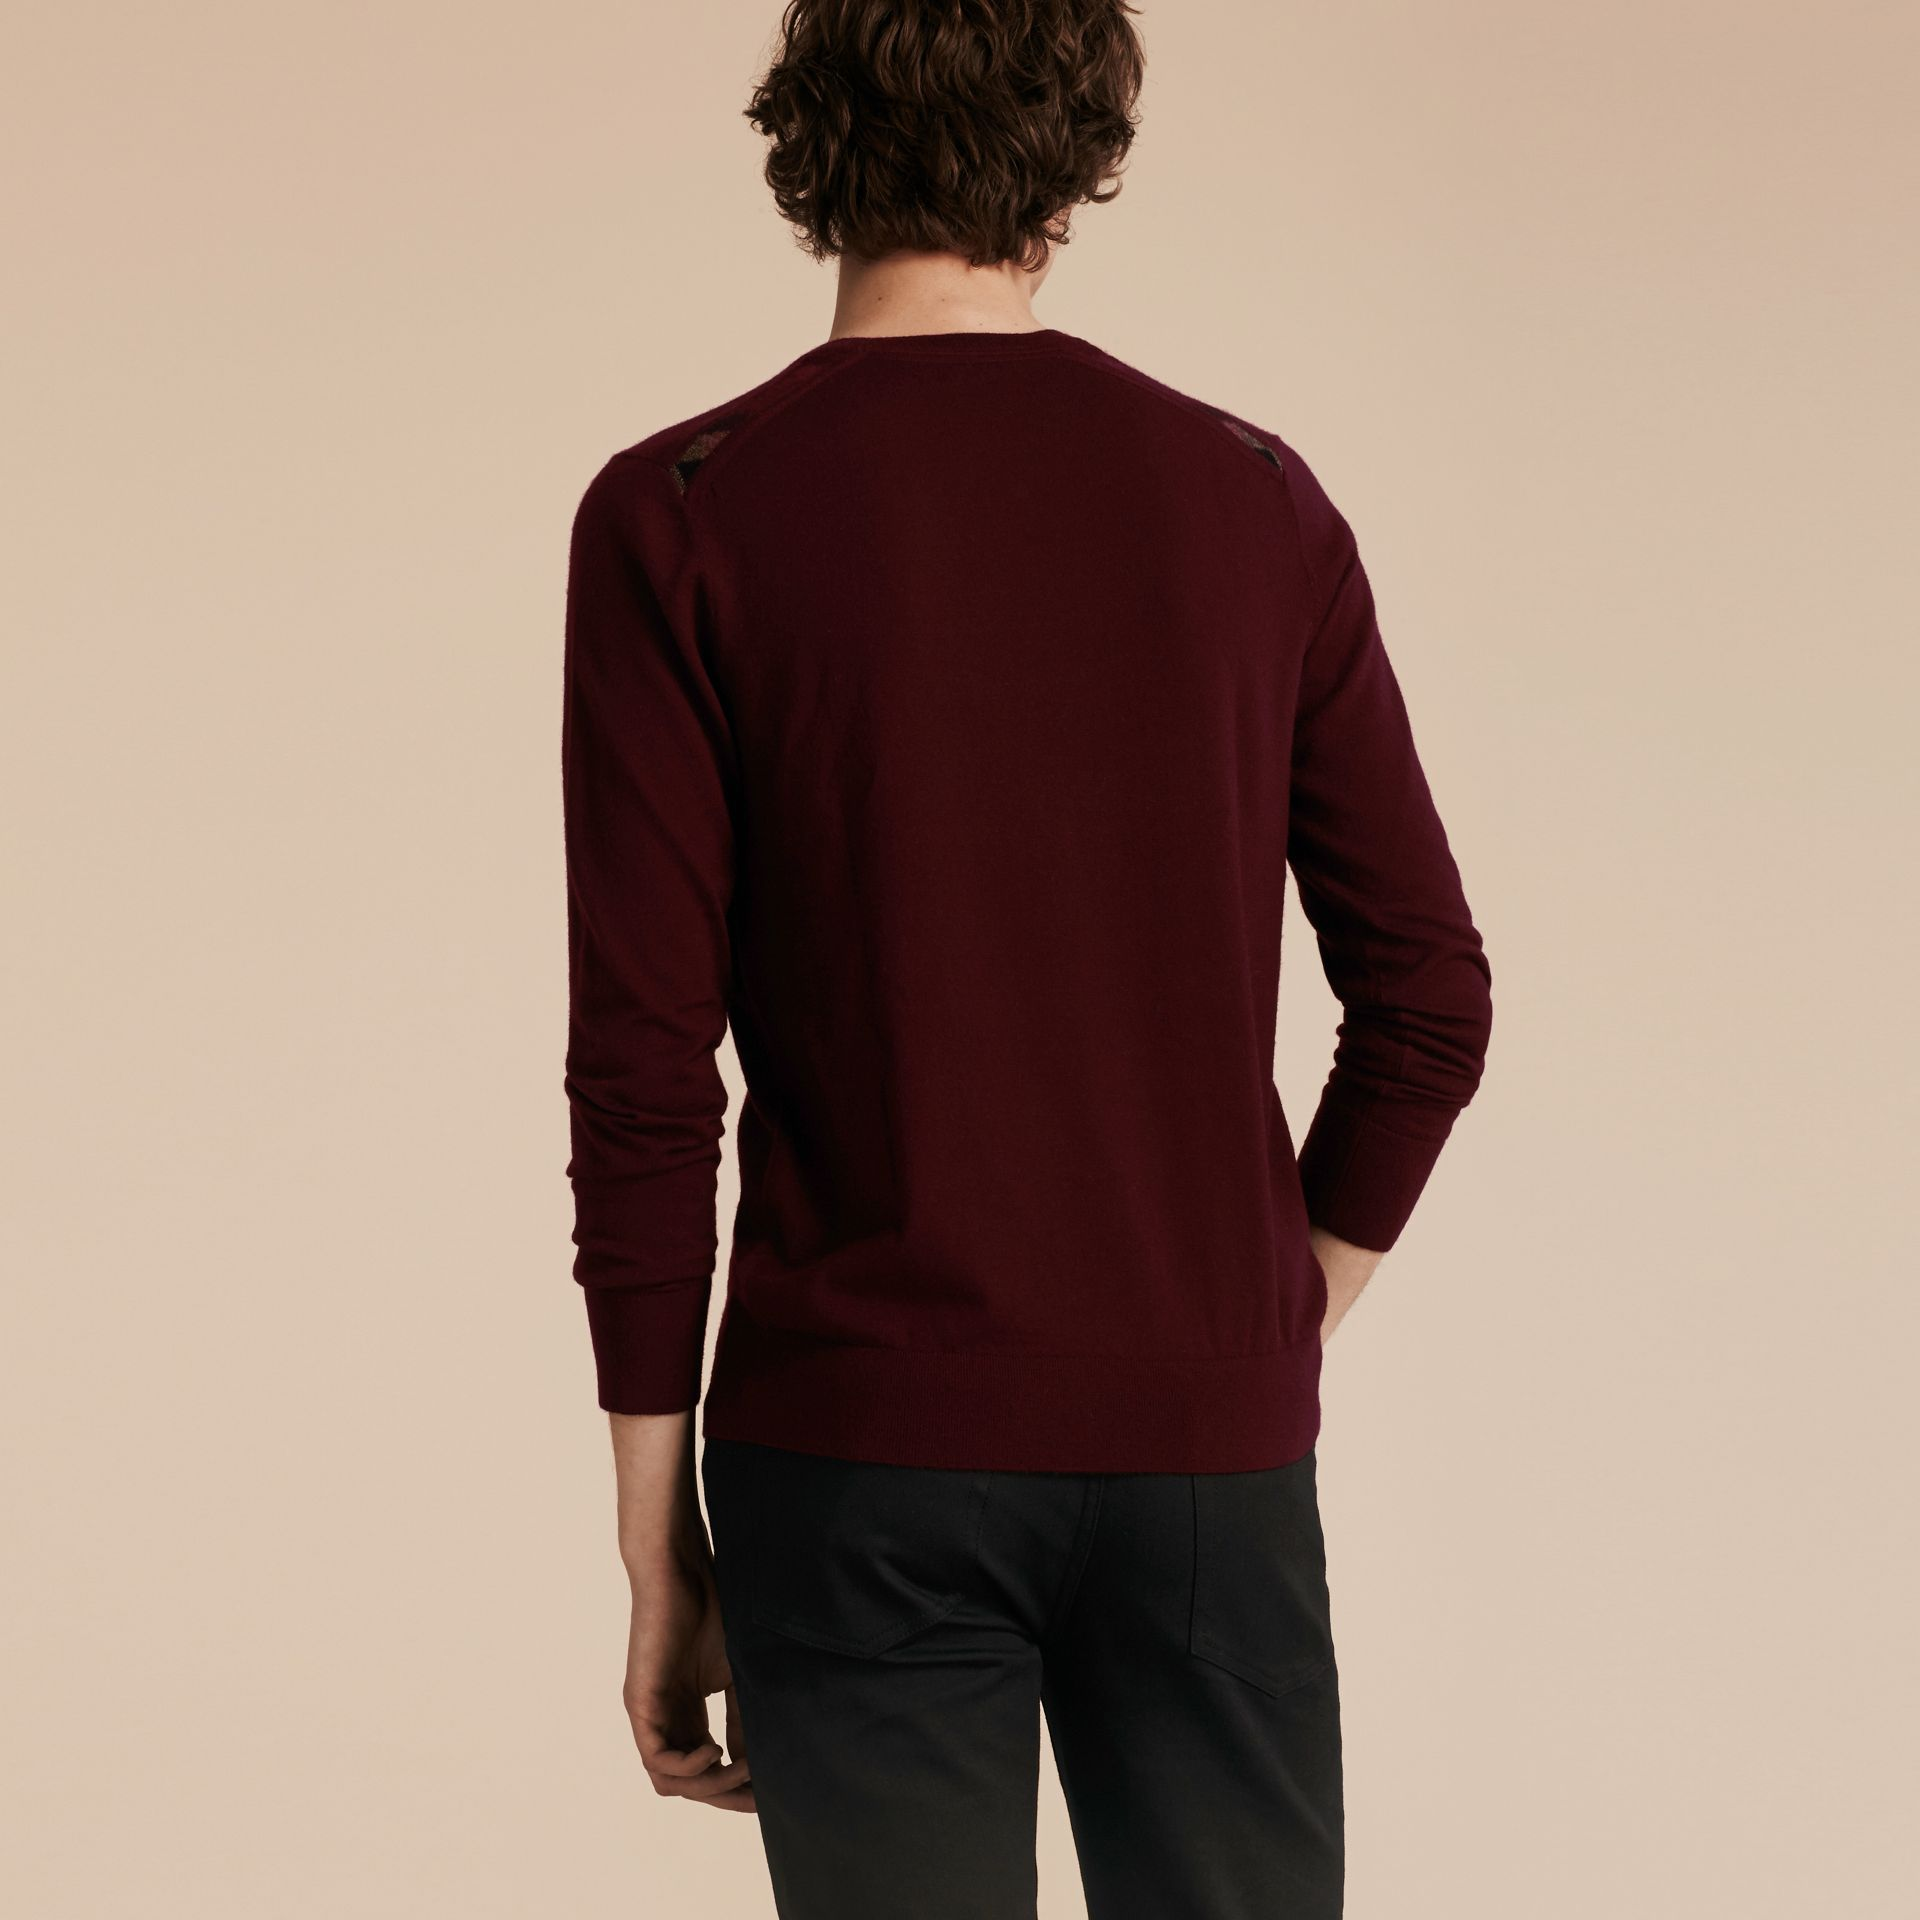 Deep claret Lightweight Crew Neck Cashmere Sweater with Check Trim Deep Claret - gallery image 3